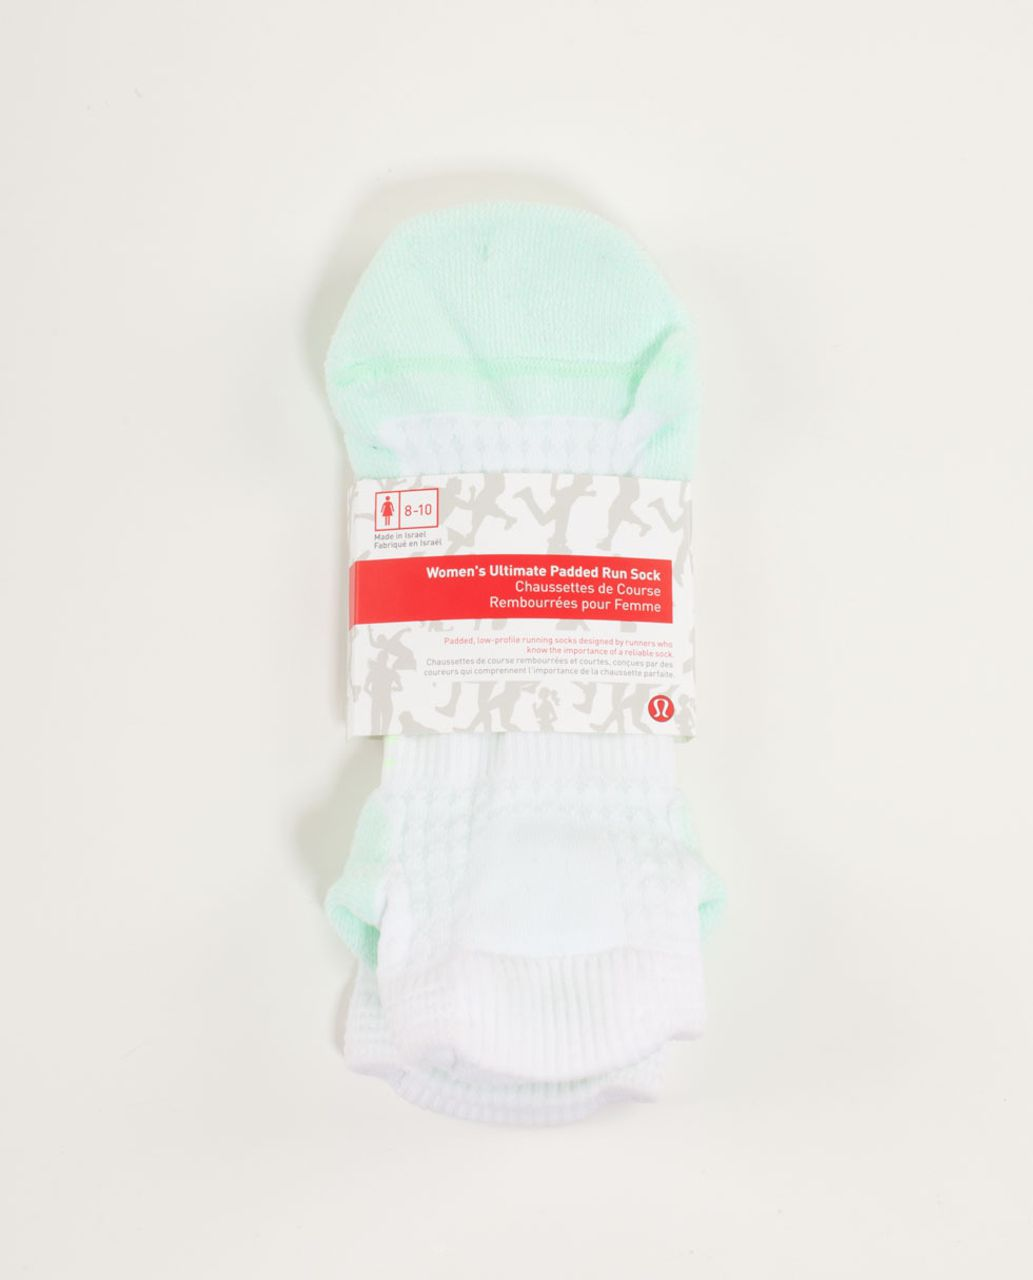 Lululemon Women's Ultimate Padded Run Sock - Fresh Teal